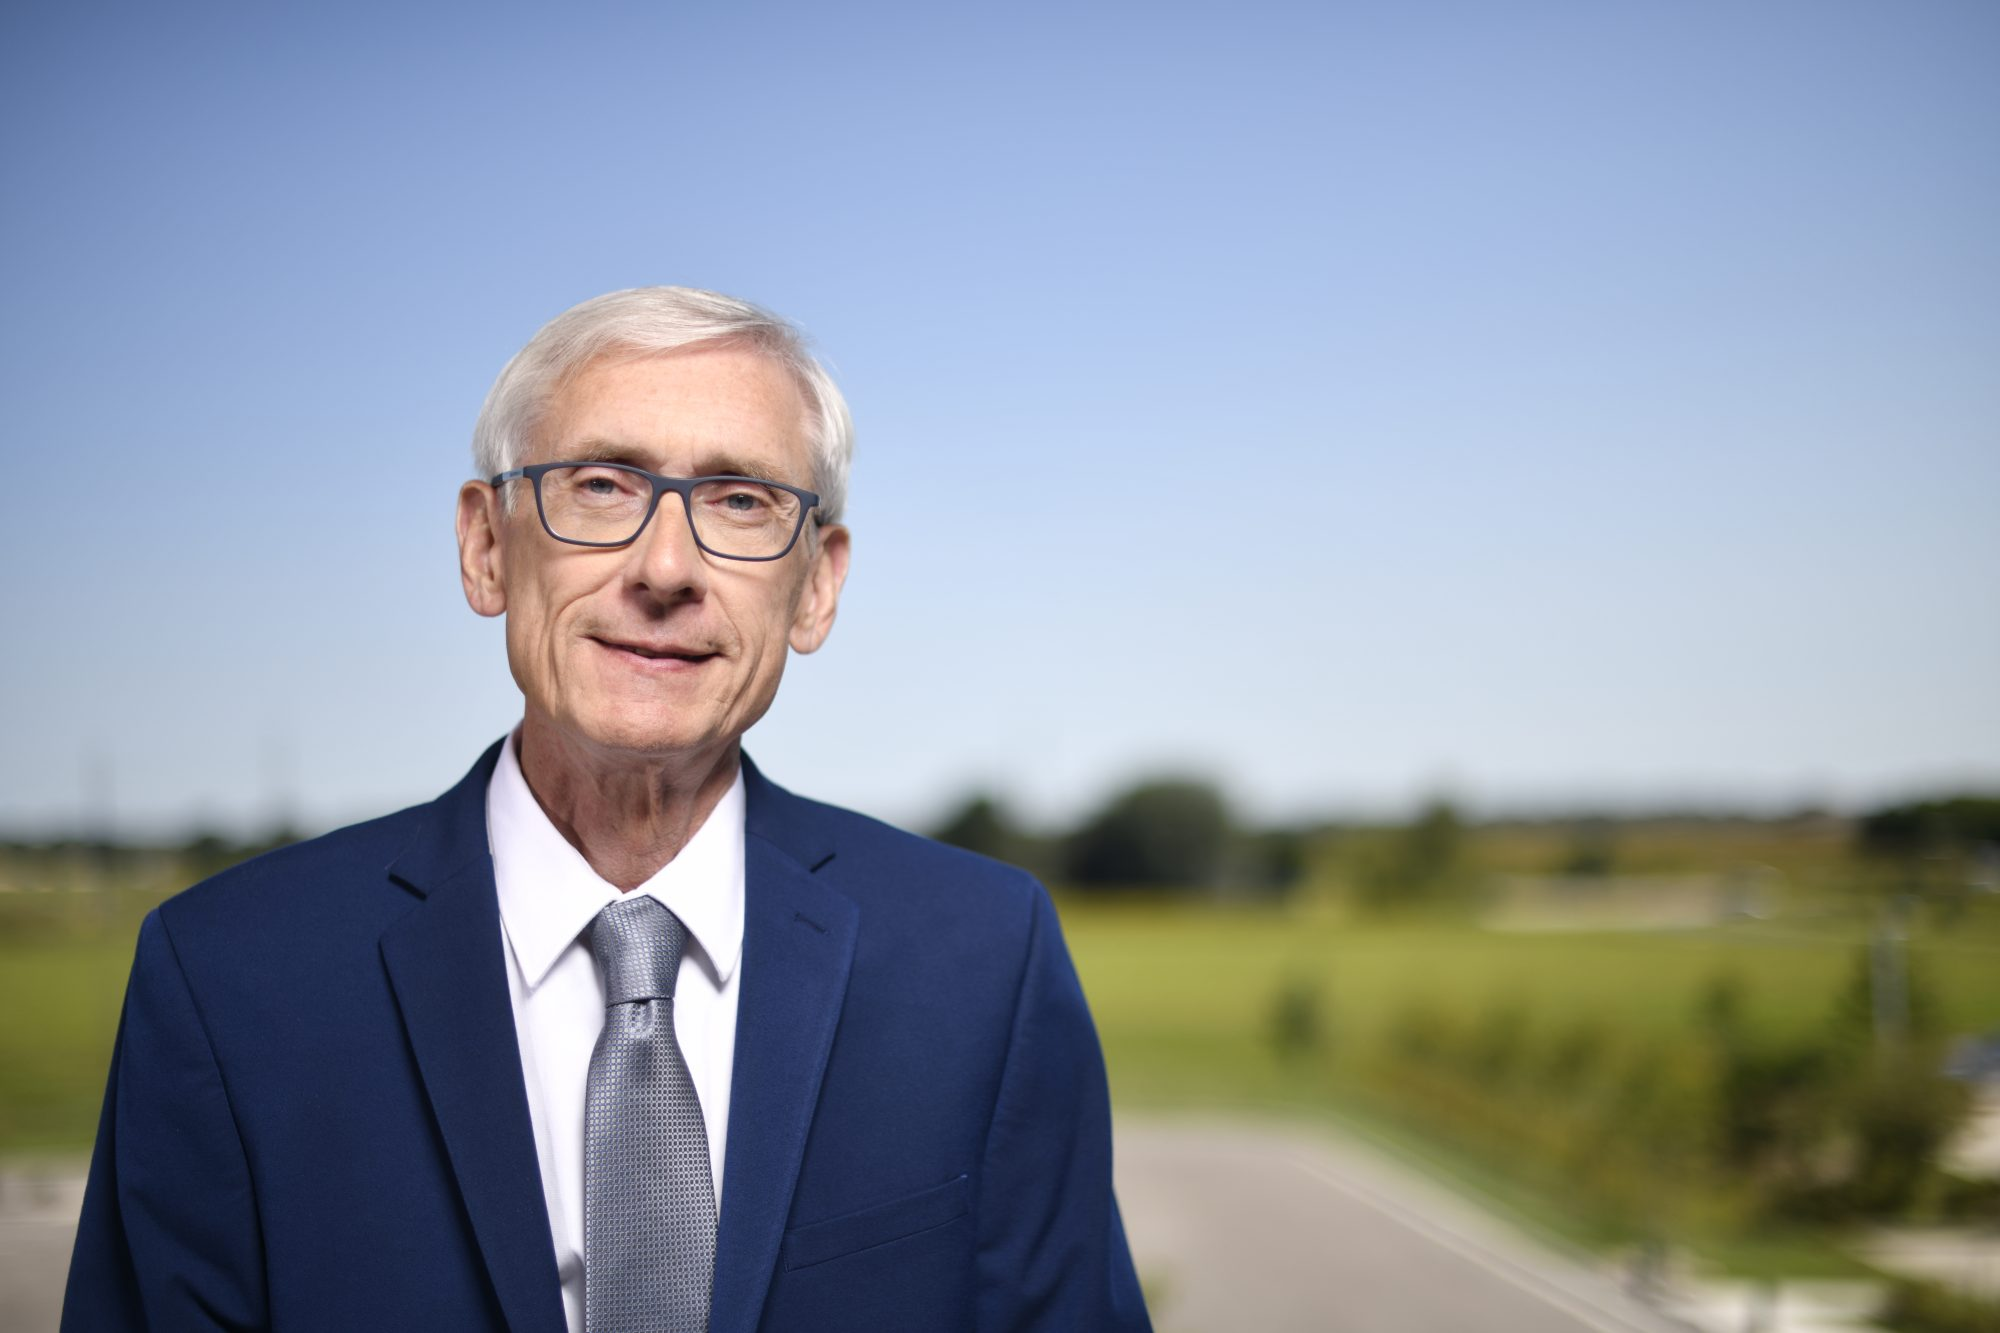 Gov. Evers Celebrates Earth Day, Signs Executive Order Pledging to Conserve and Restore Forestland